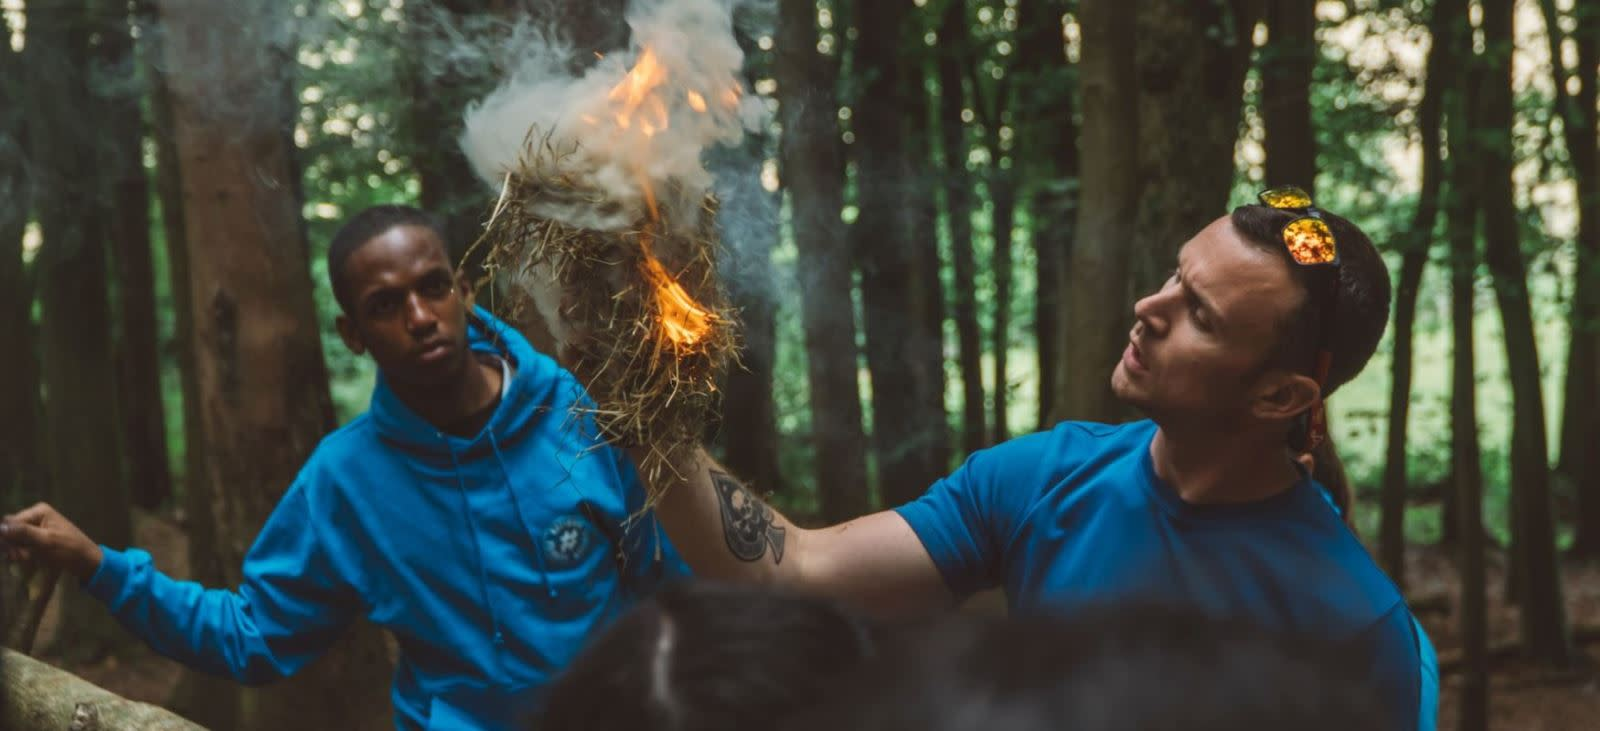 Making a fire as part of Bushcraft, Cumulus Outdoors